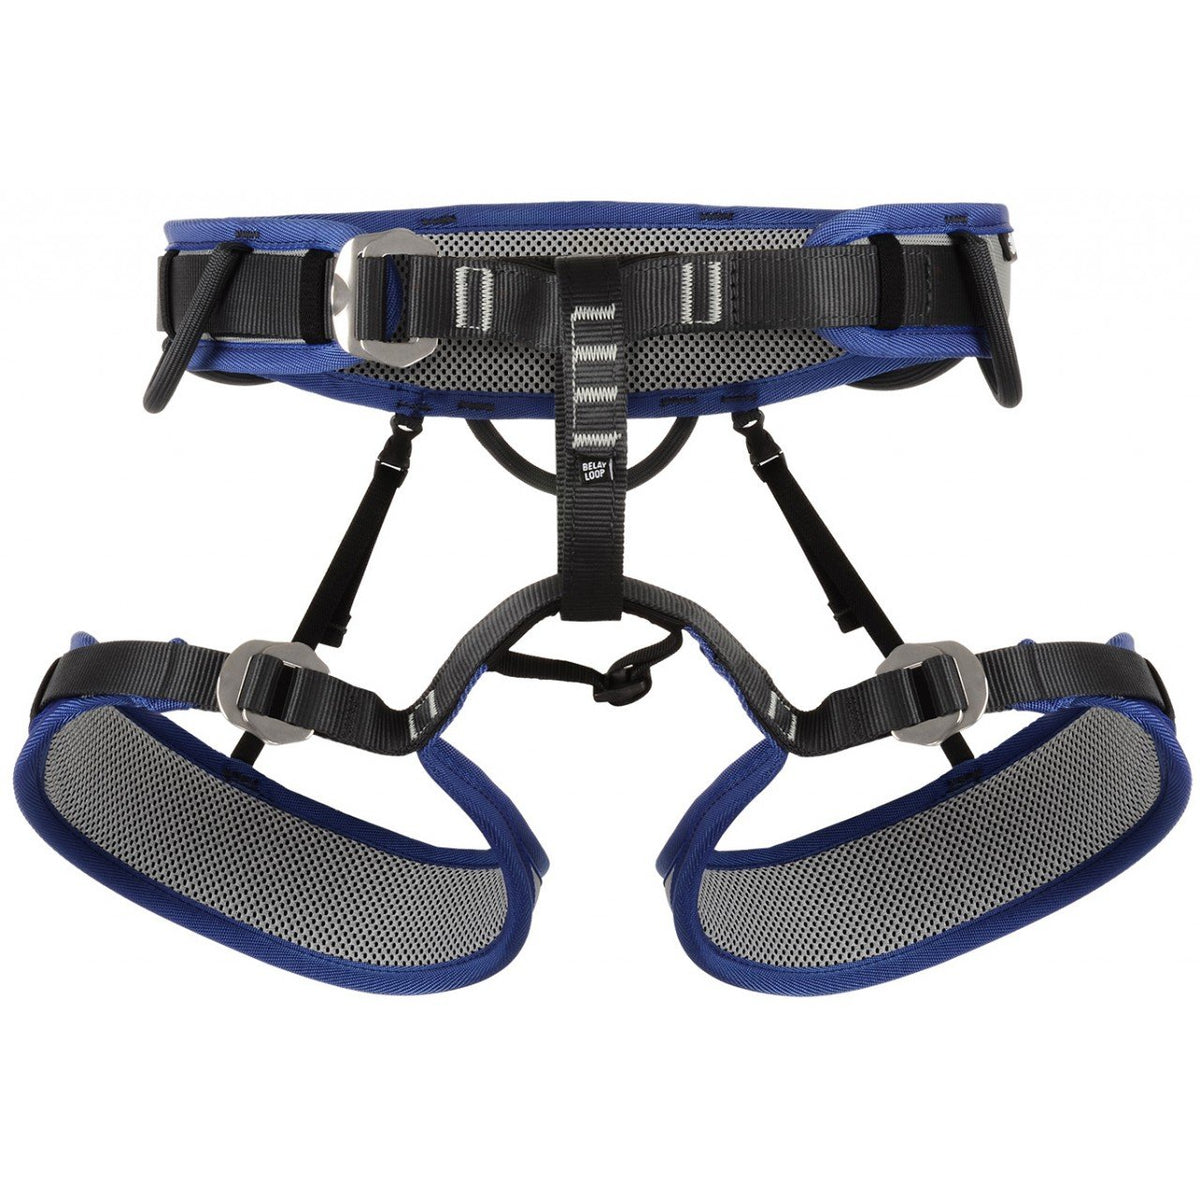 DMM Viper 2 Harness in grey and blue colours